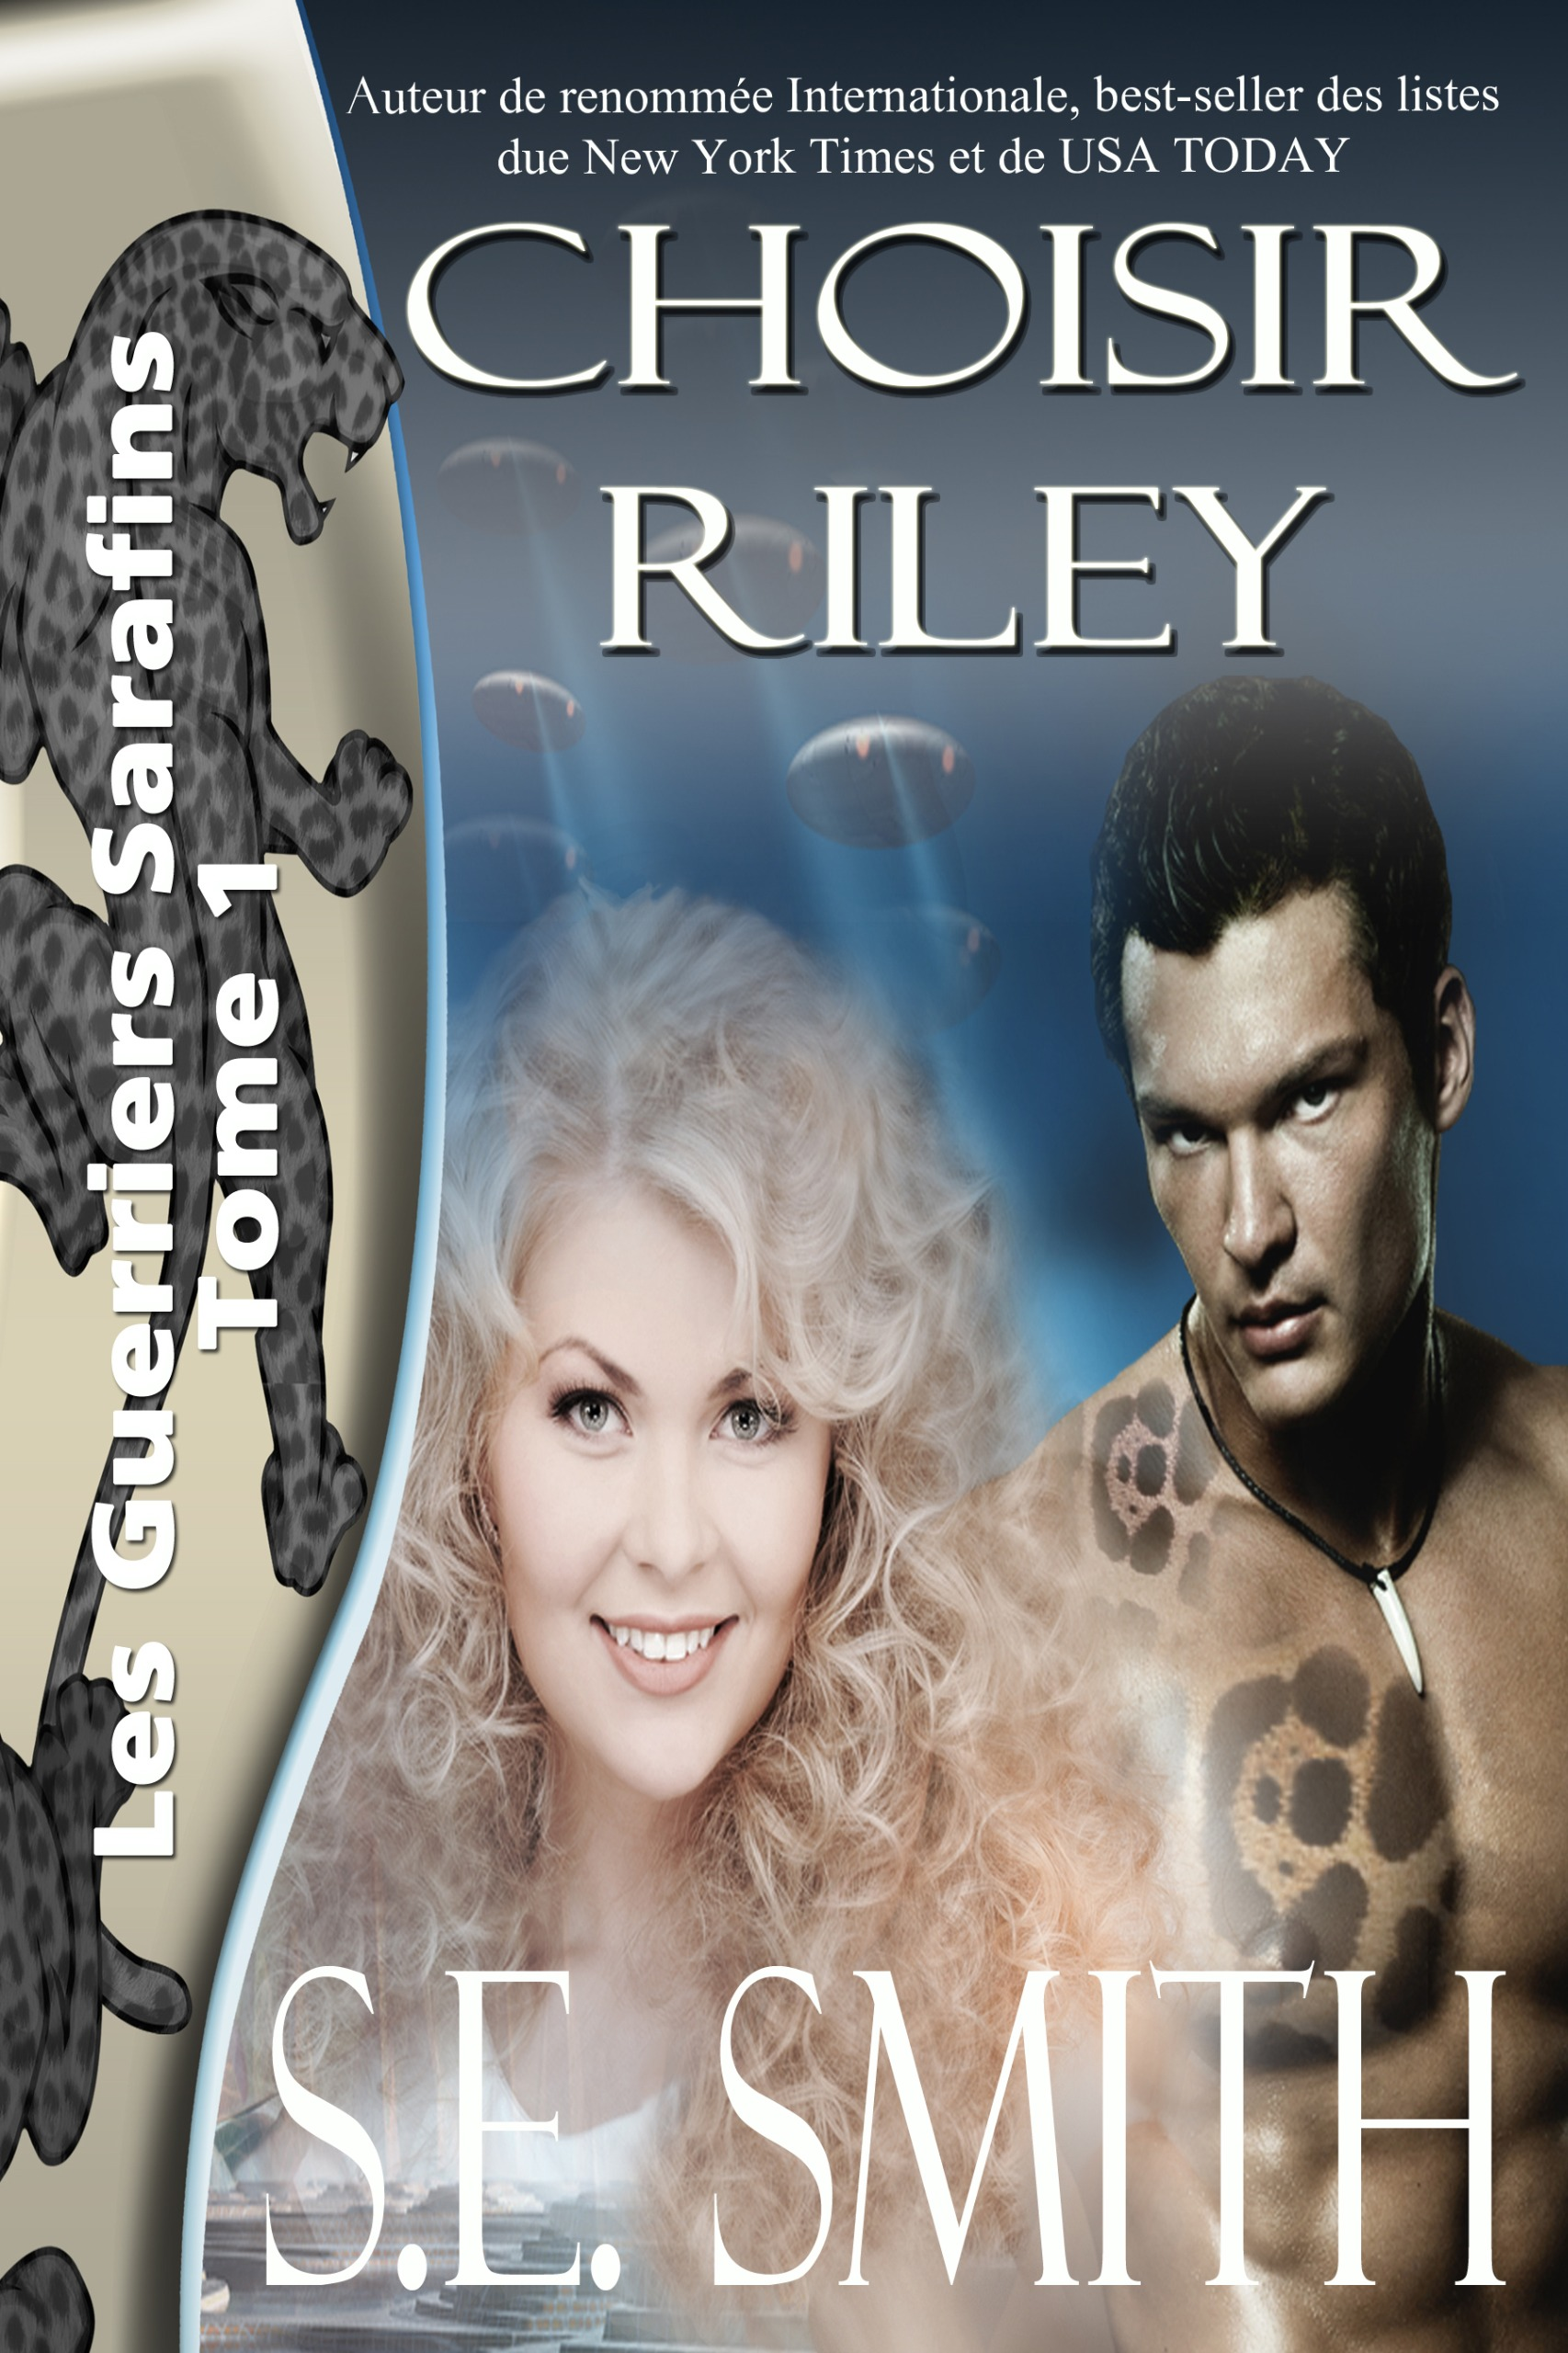 Choisir Riley: Les Guerriers Sarafins Tome 1 (ebook: Kindle et epub)